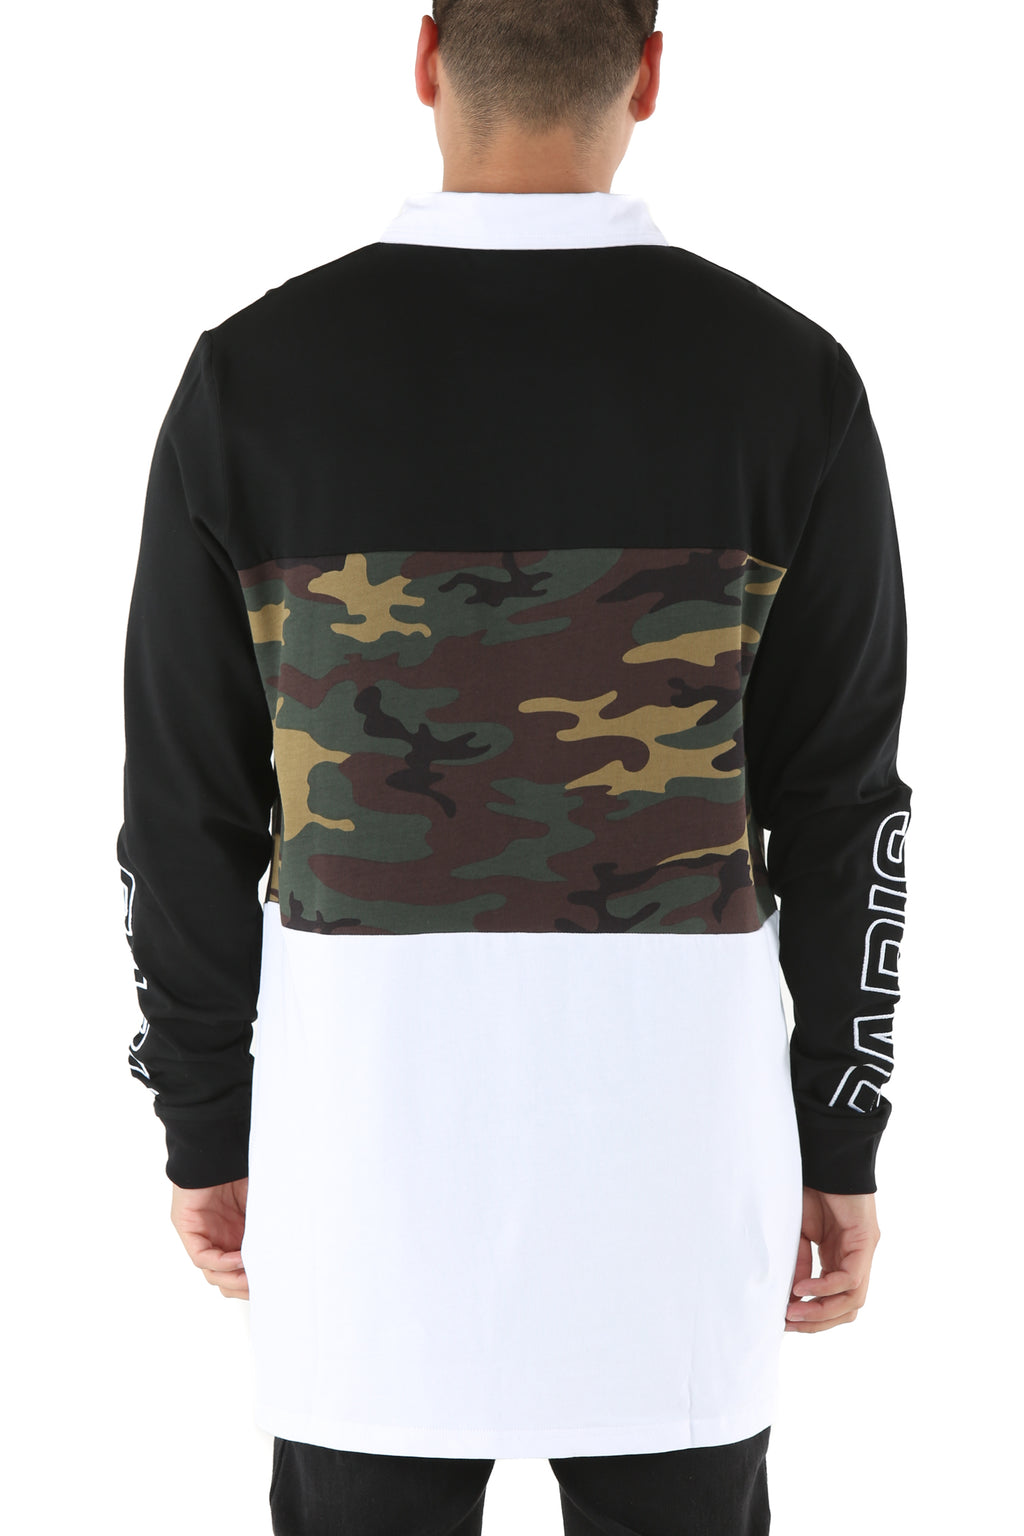 Carré Conducteur Long Sleeve Polo Black/Camo/White